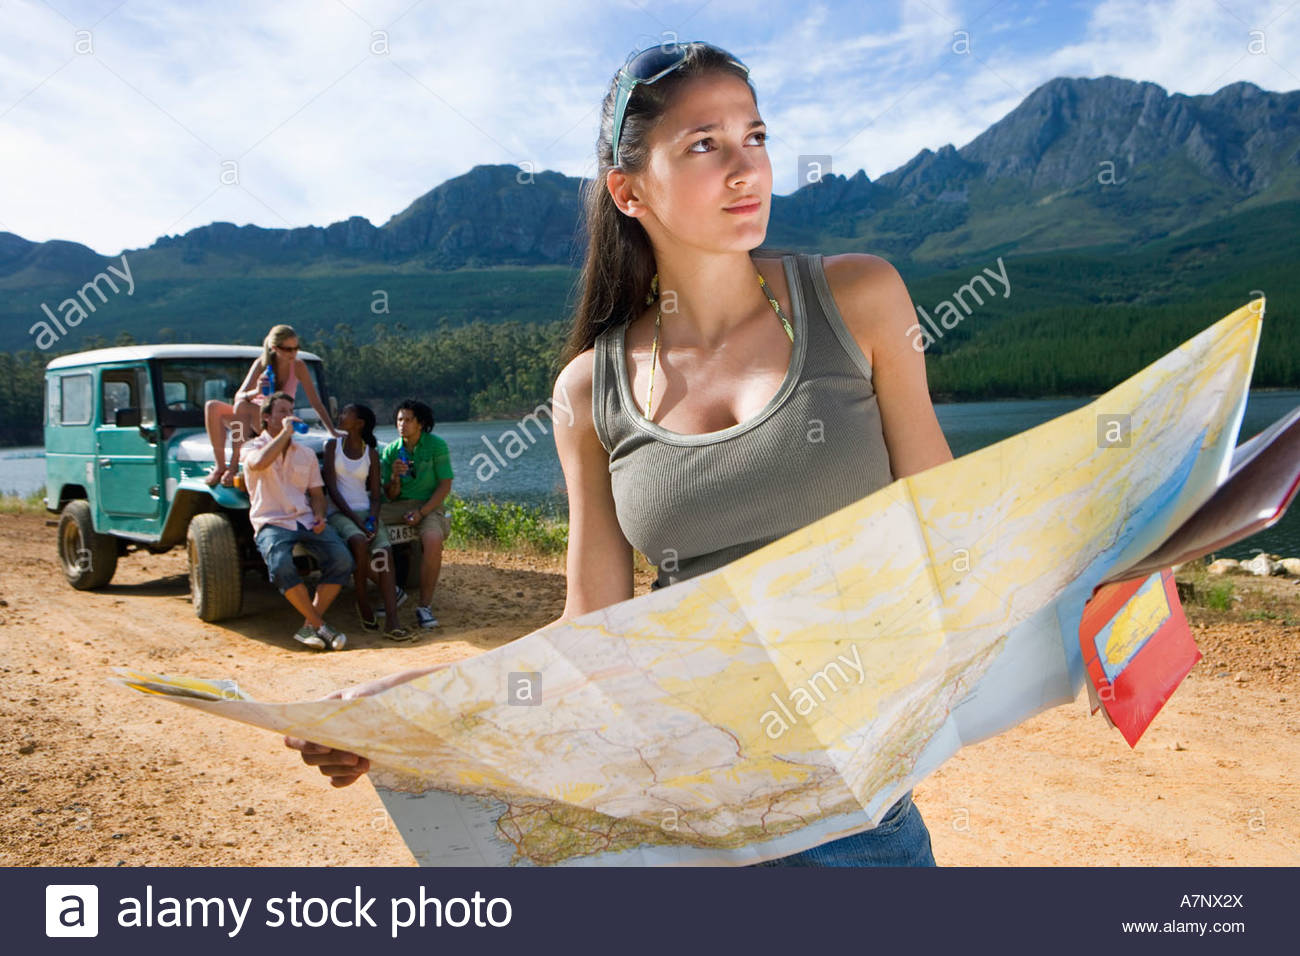 Four young adults waiting near parked jeep on dirt track beside lake focus on woman consulting map in foreground - Stock Image